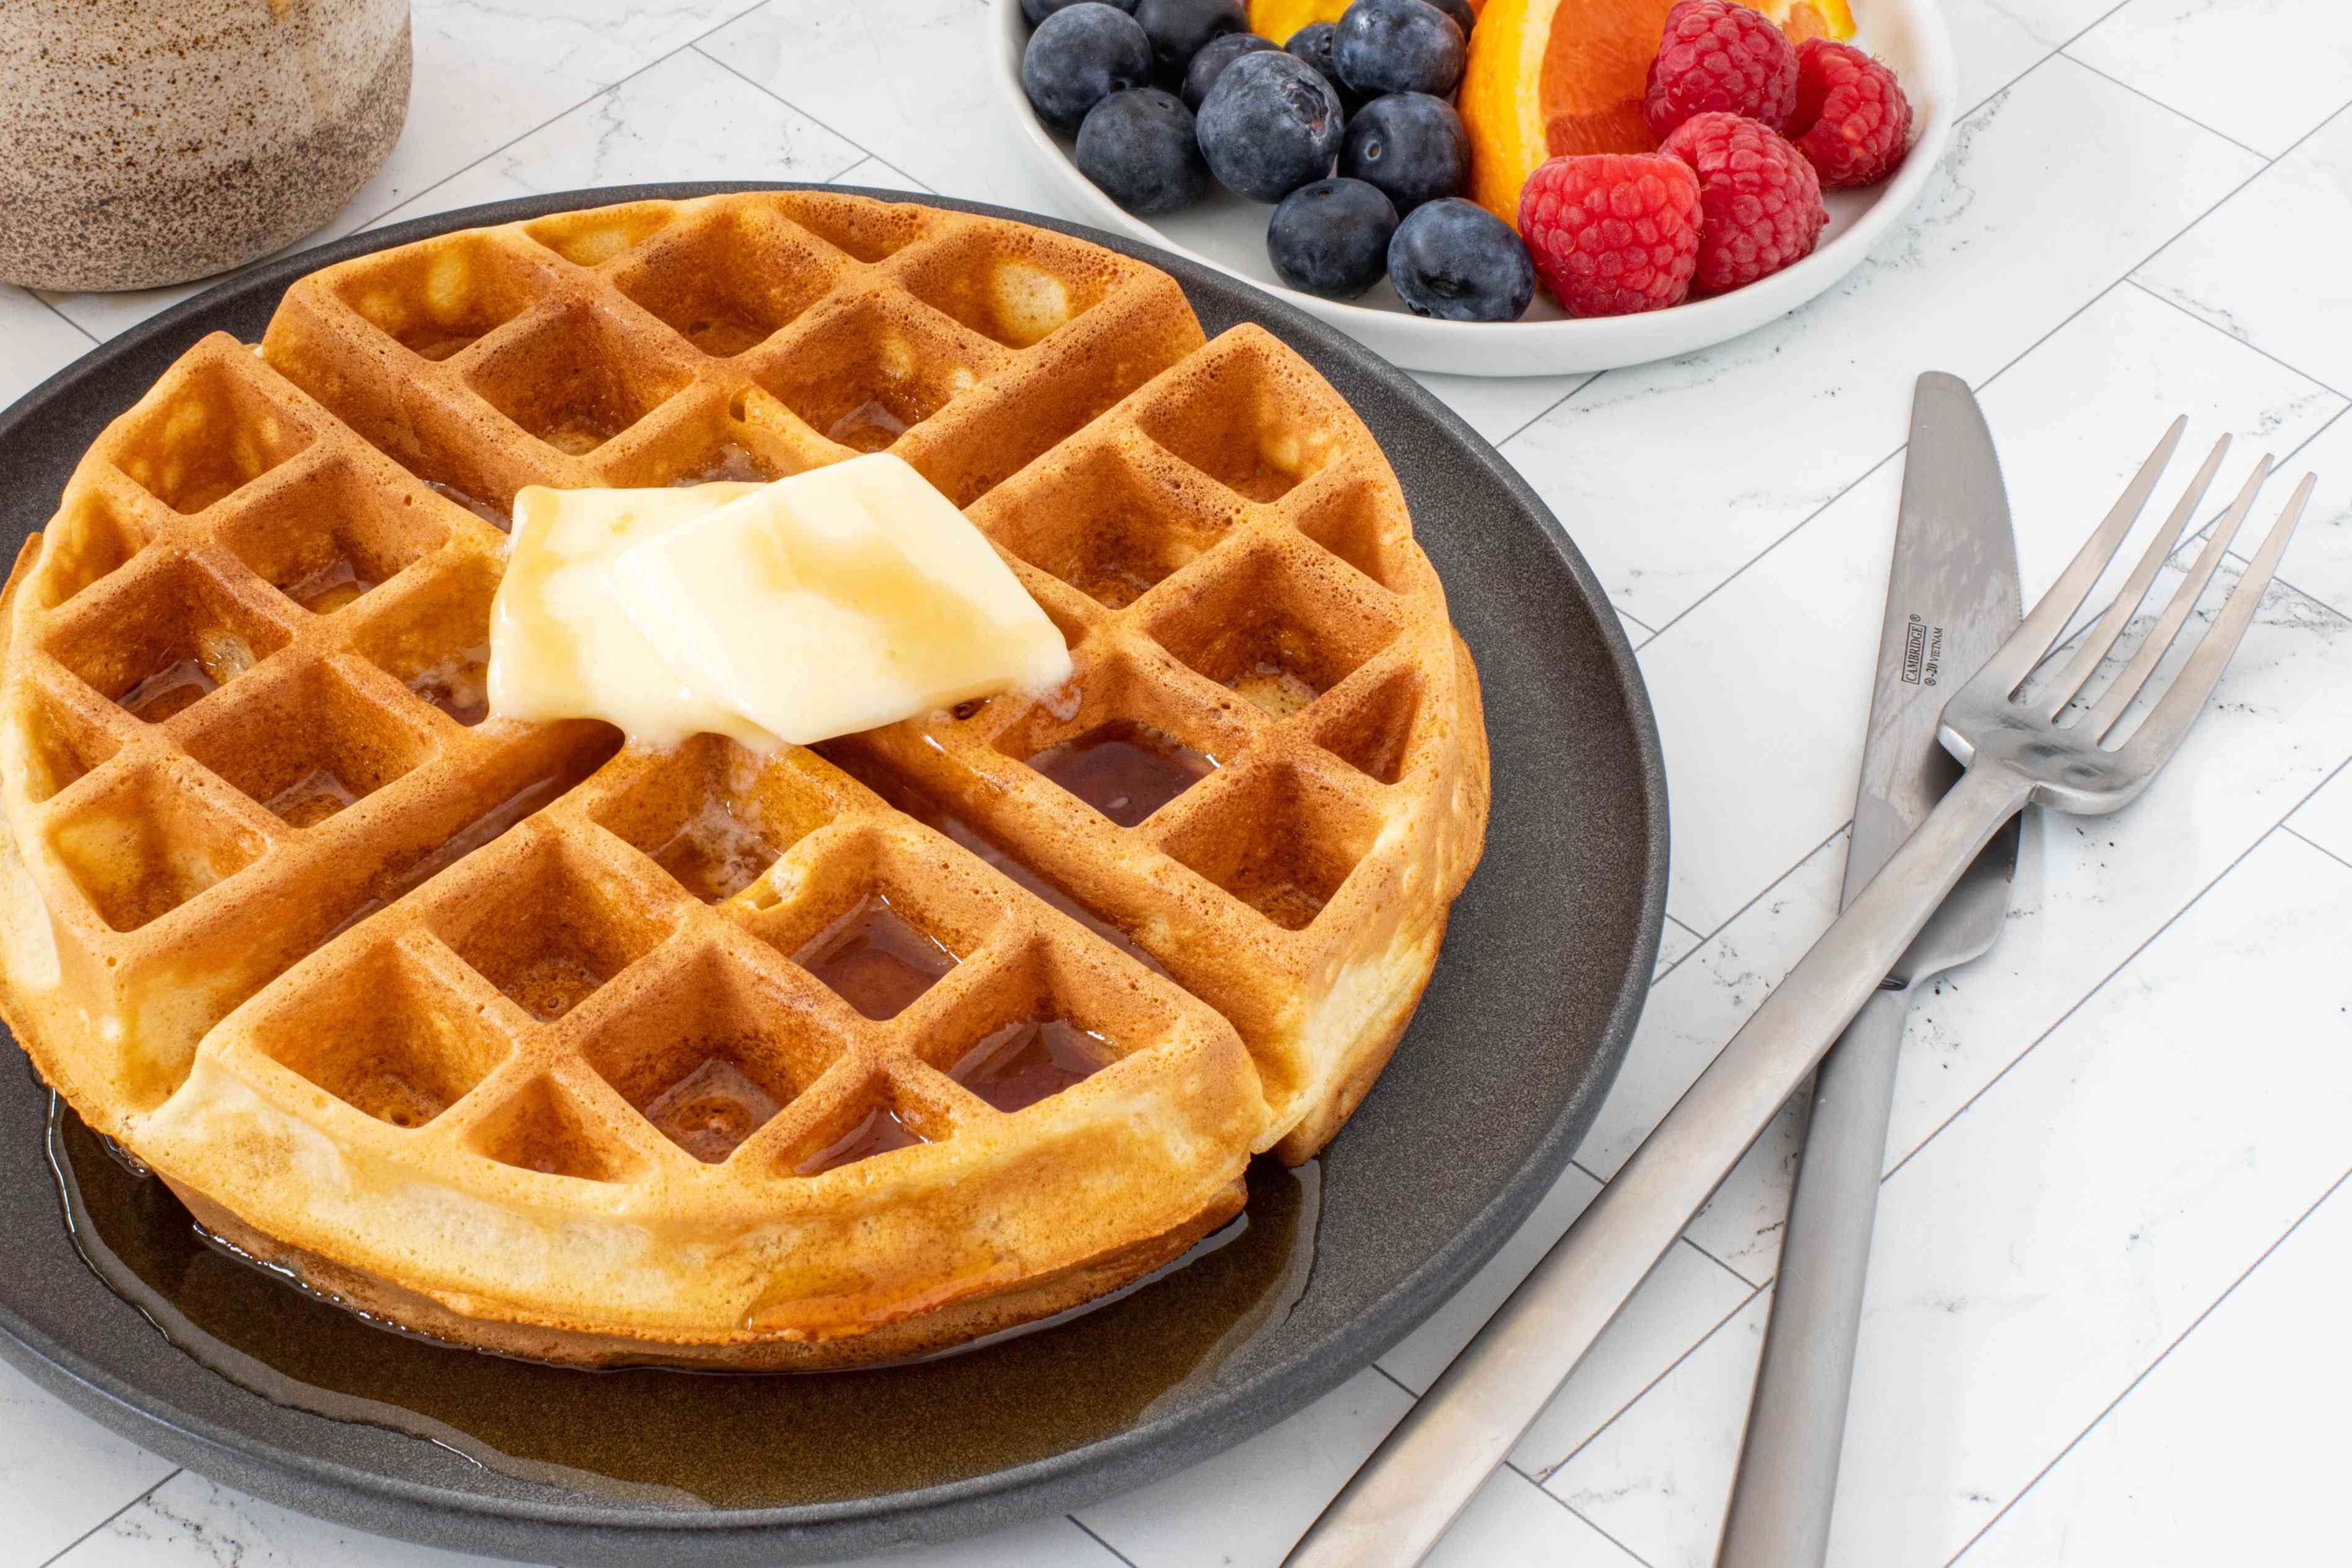 waffle with butter and syrup with fruit and berries on the side